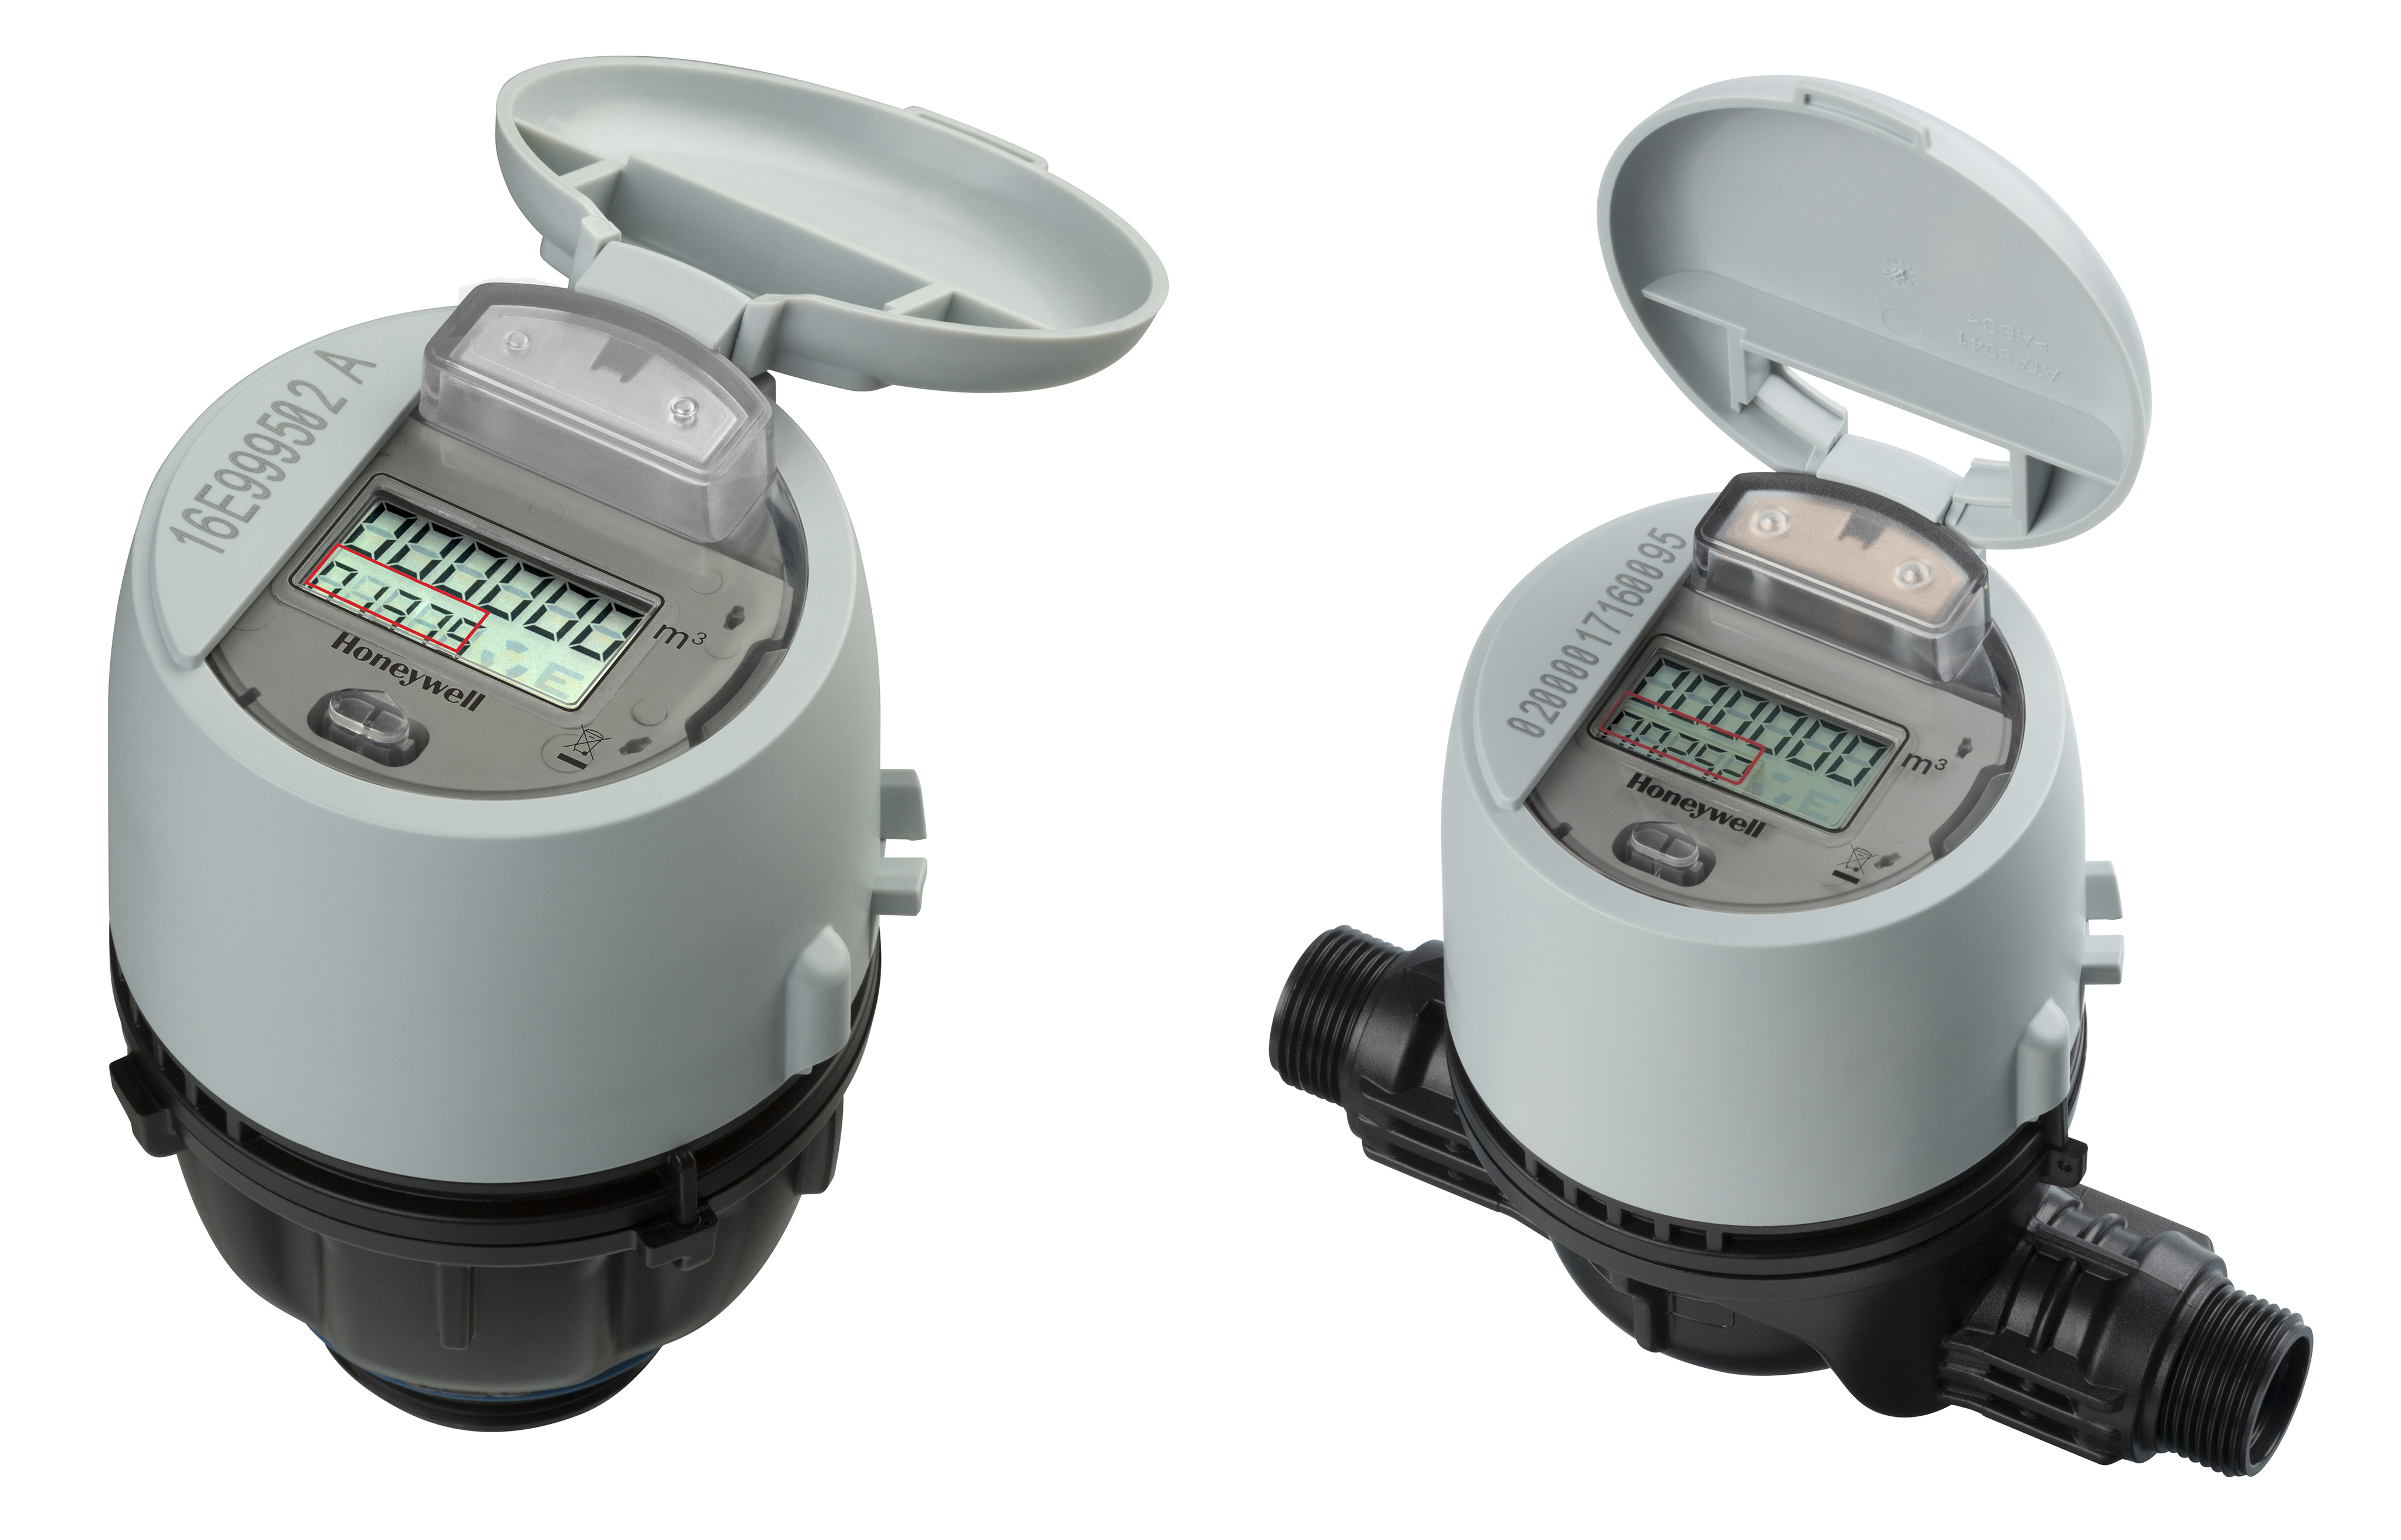 Honeywell Elster V200 & V210 Hybrid Cold Water Meters from